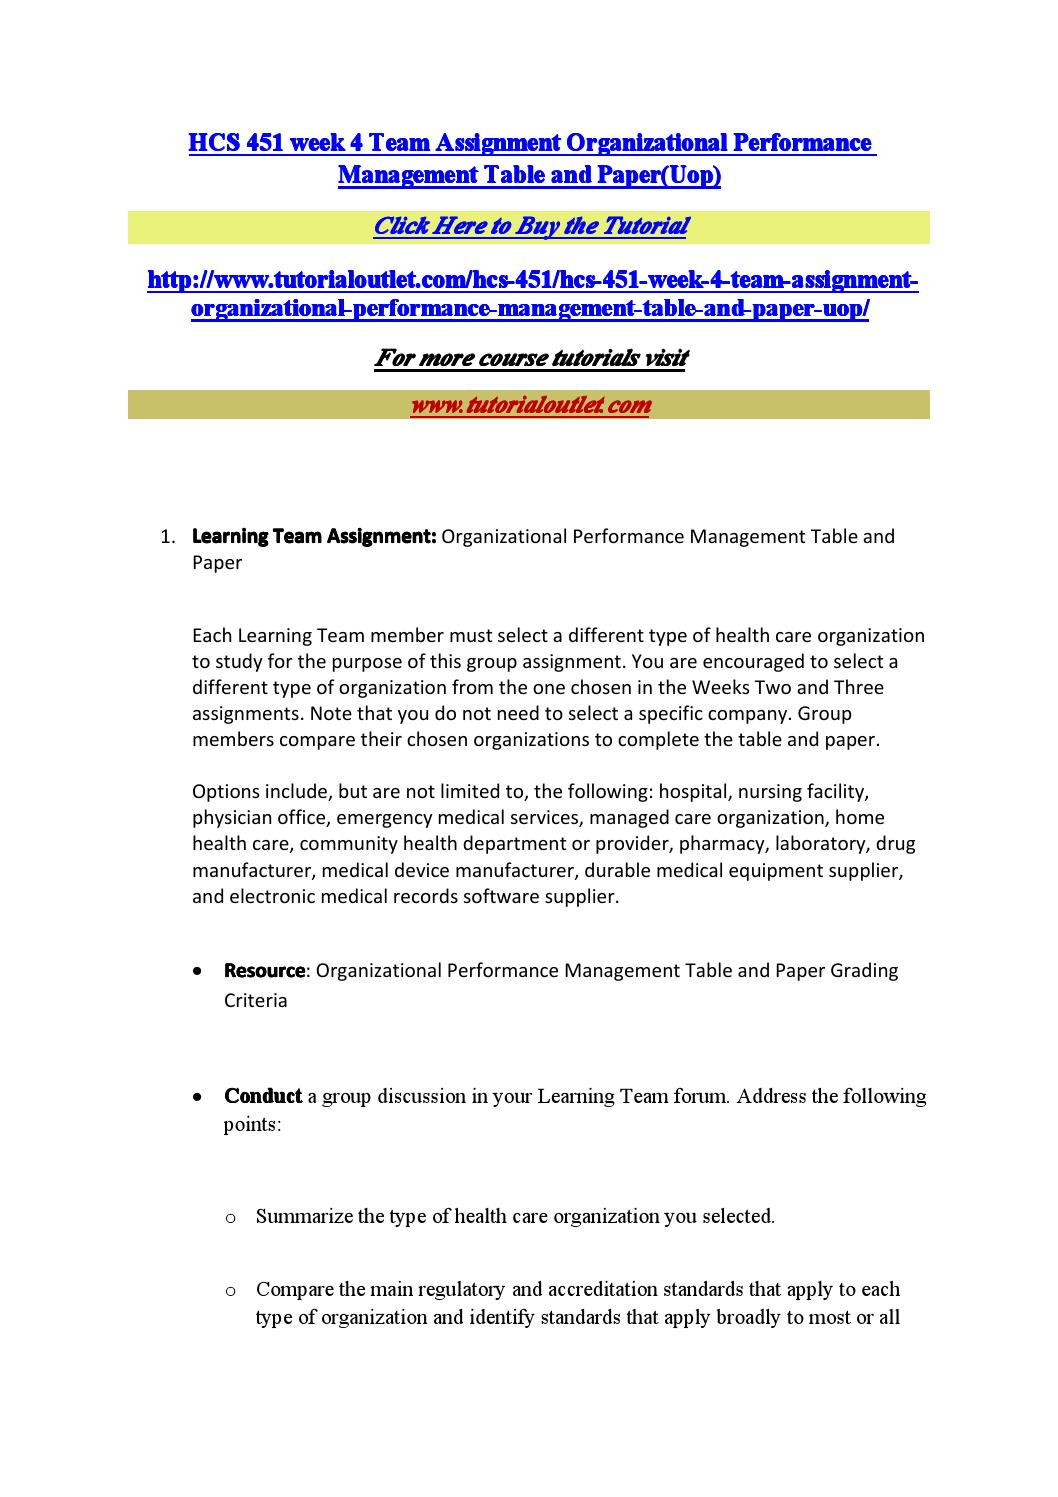 team a organizational performance management essay Team a organizational performance management (draft version) 451 week 4 organizational performance management table and paper learning team organizational p.